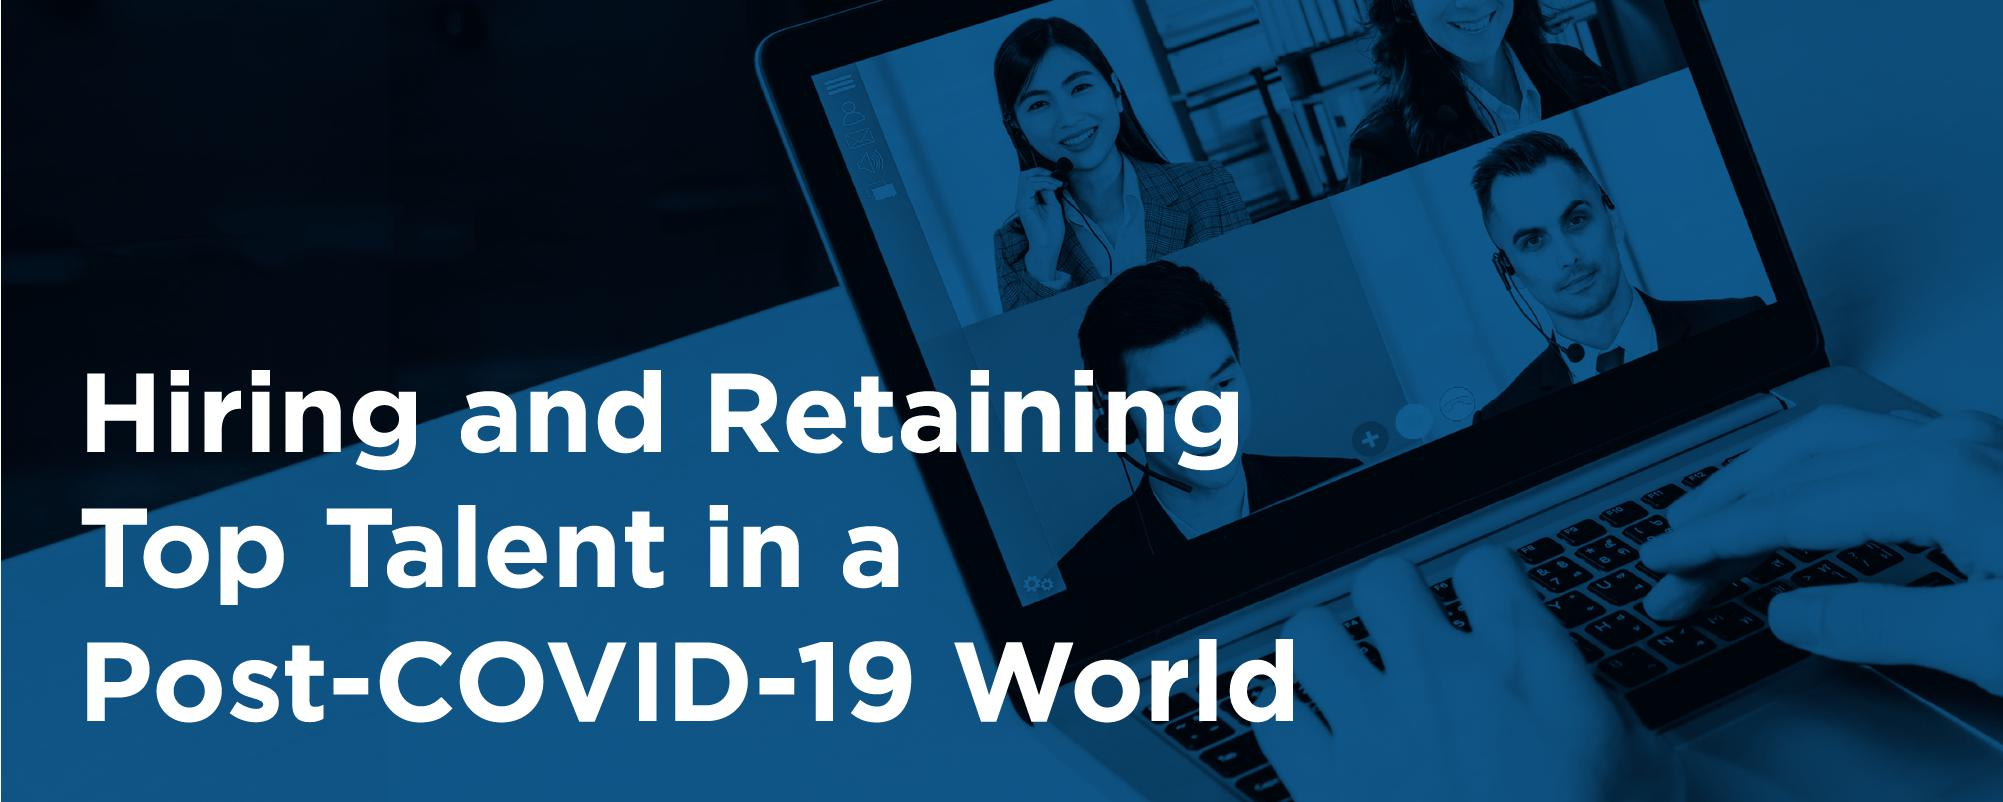 hiring-and-retaining-top-talent-in-a-post-covid-19-world